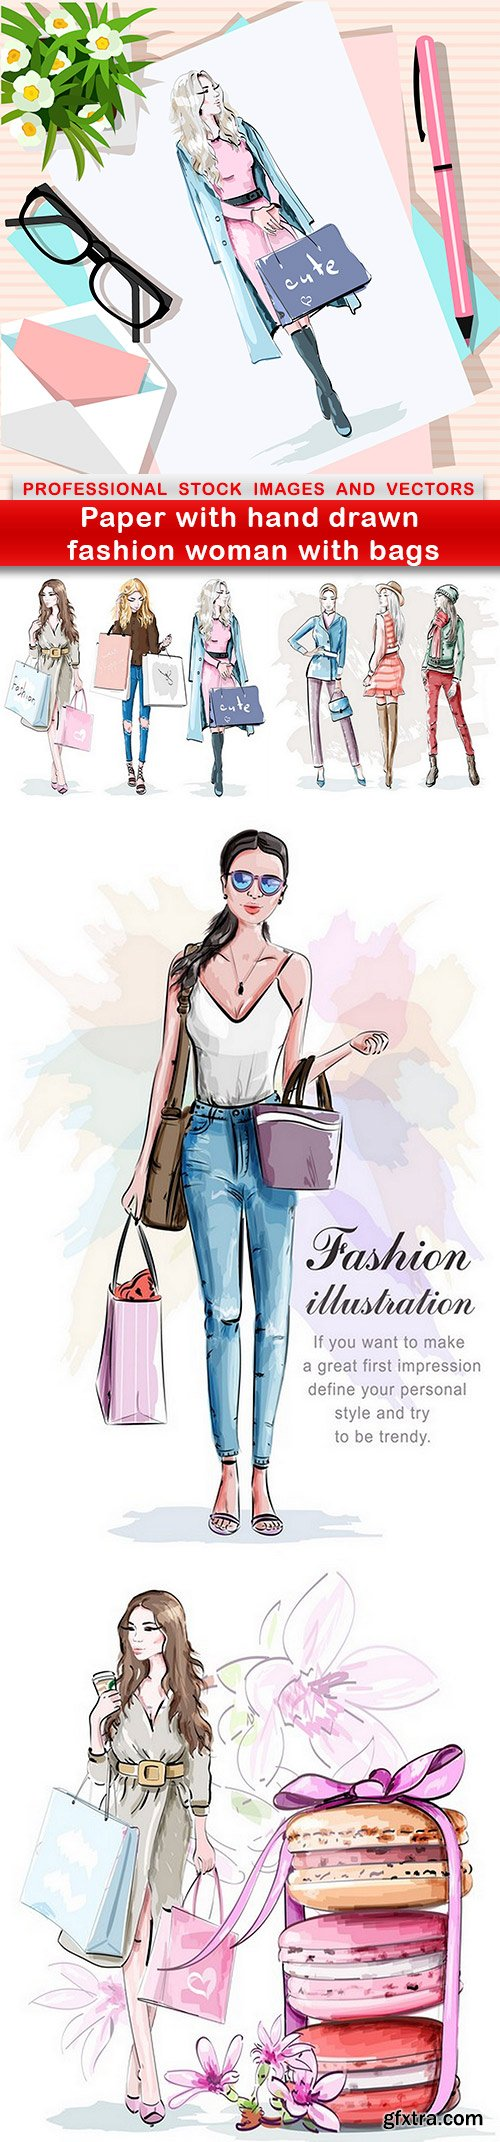 Paper with hand drawn fashion woman with bags - 5 EPS